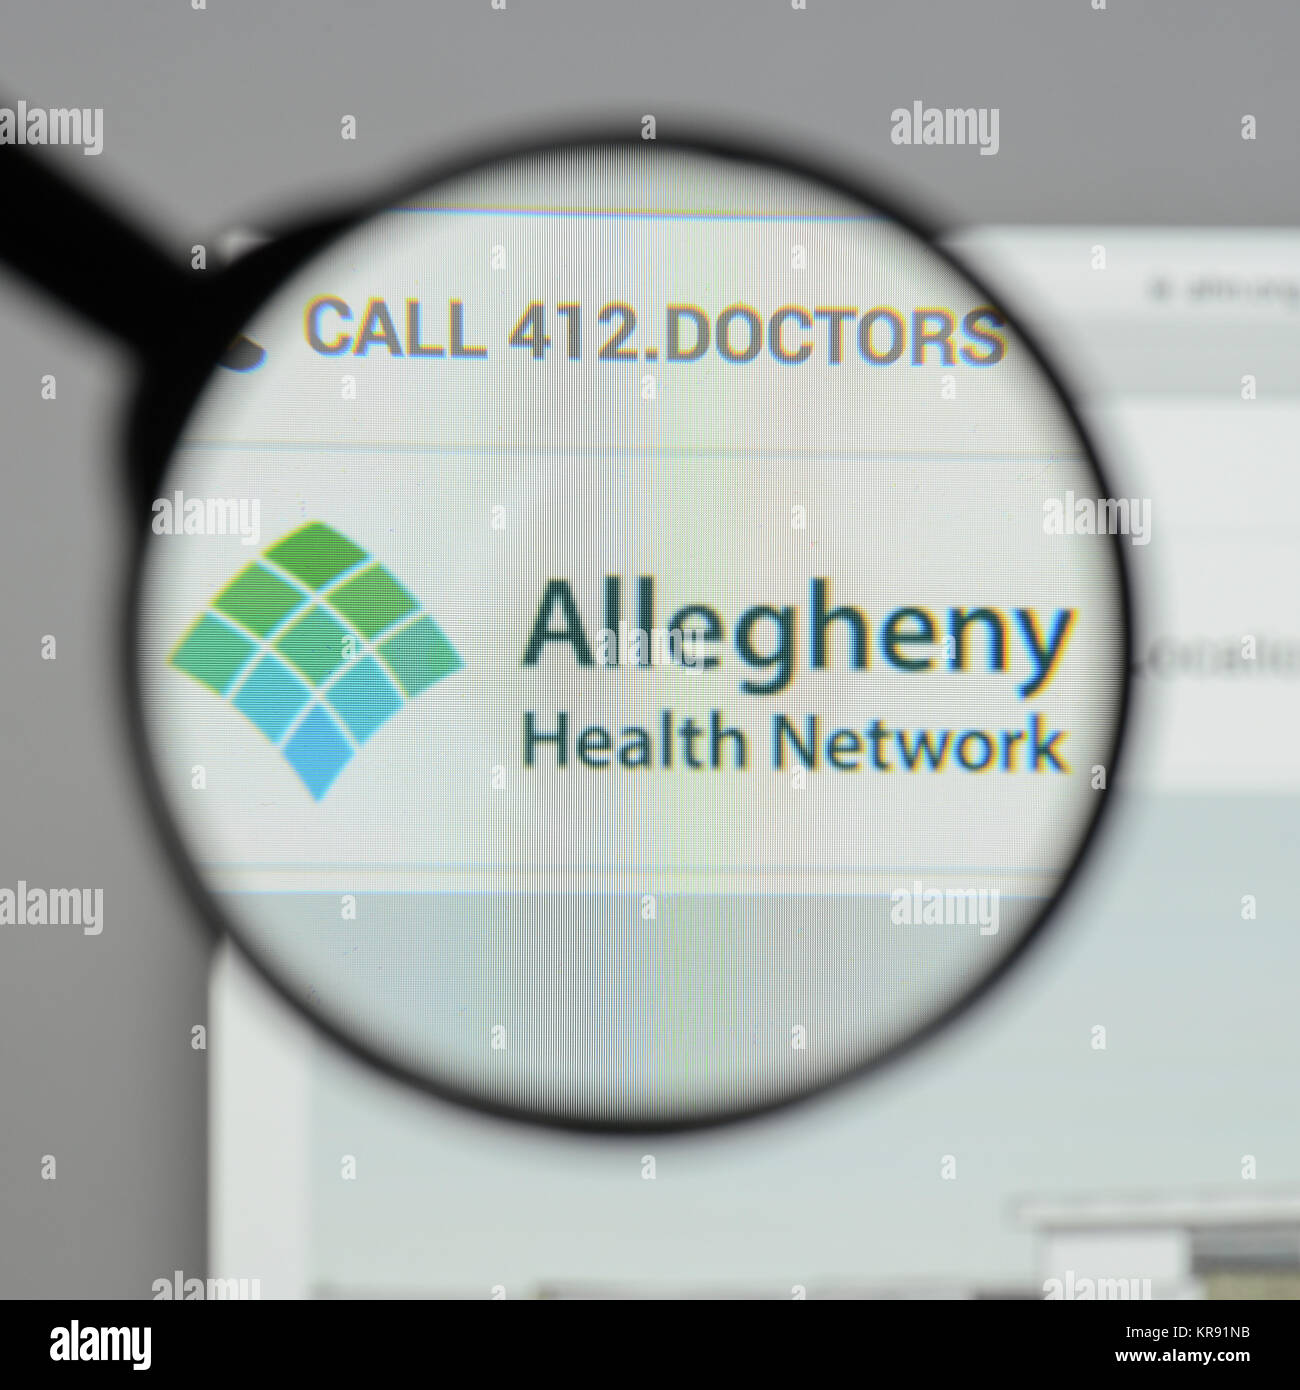 Milan, Italy - August 10, 2017: Allegheny health network